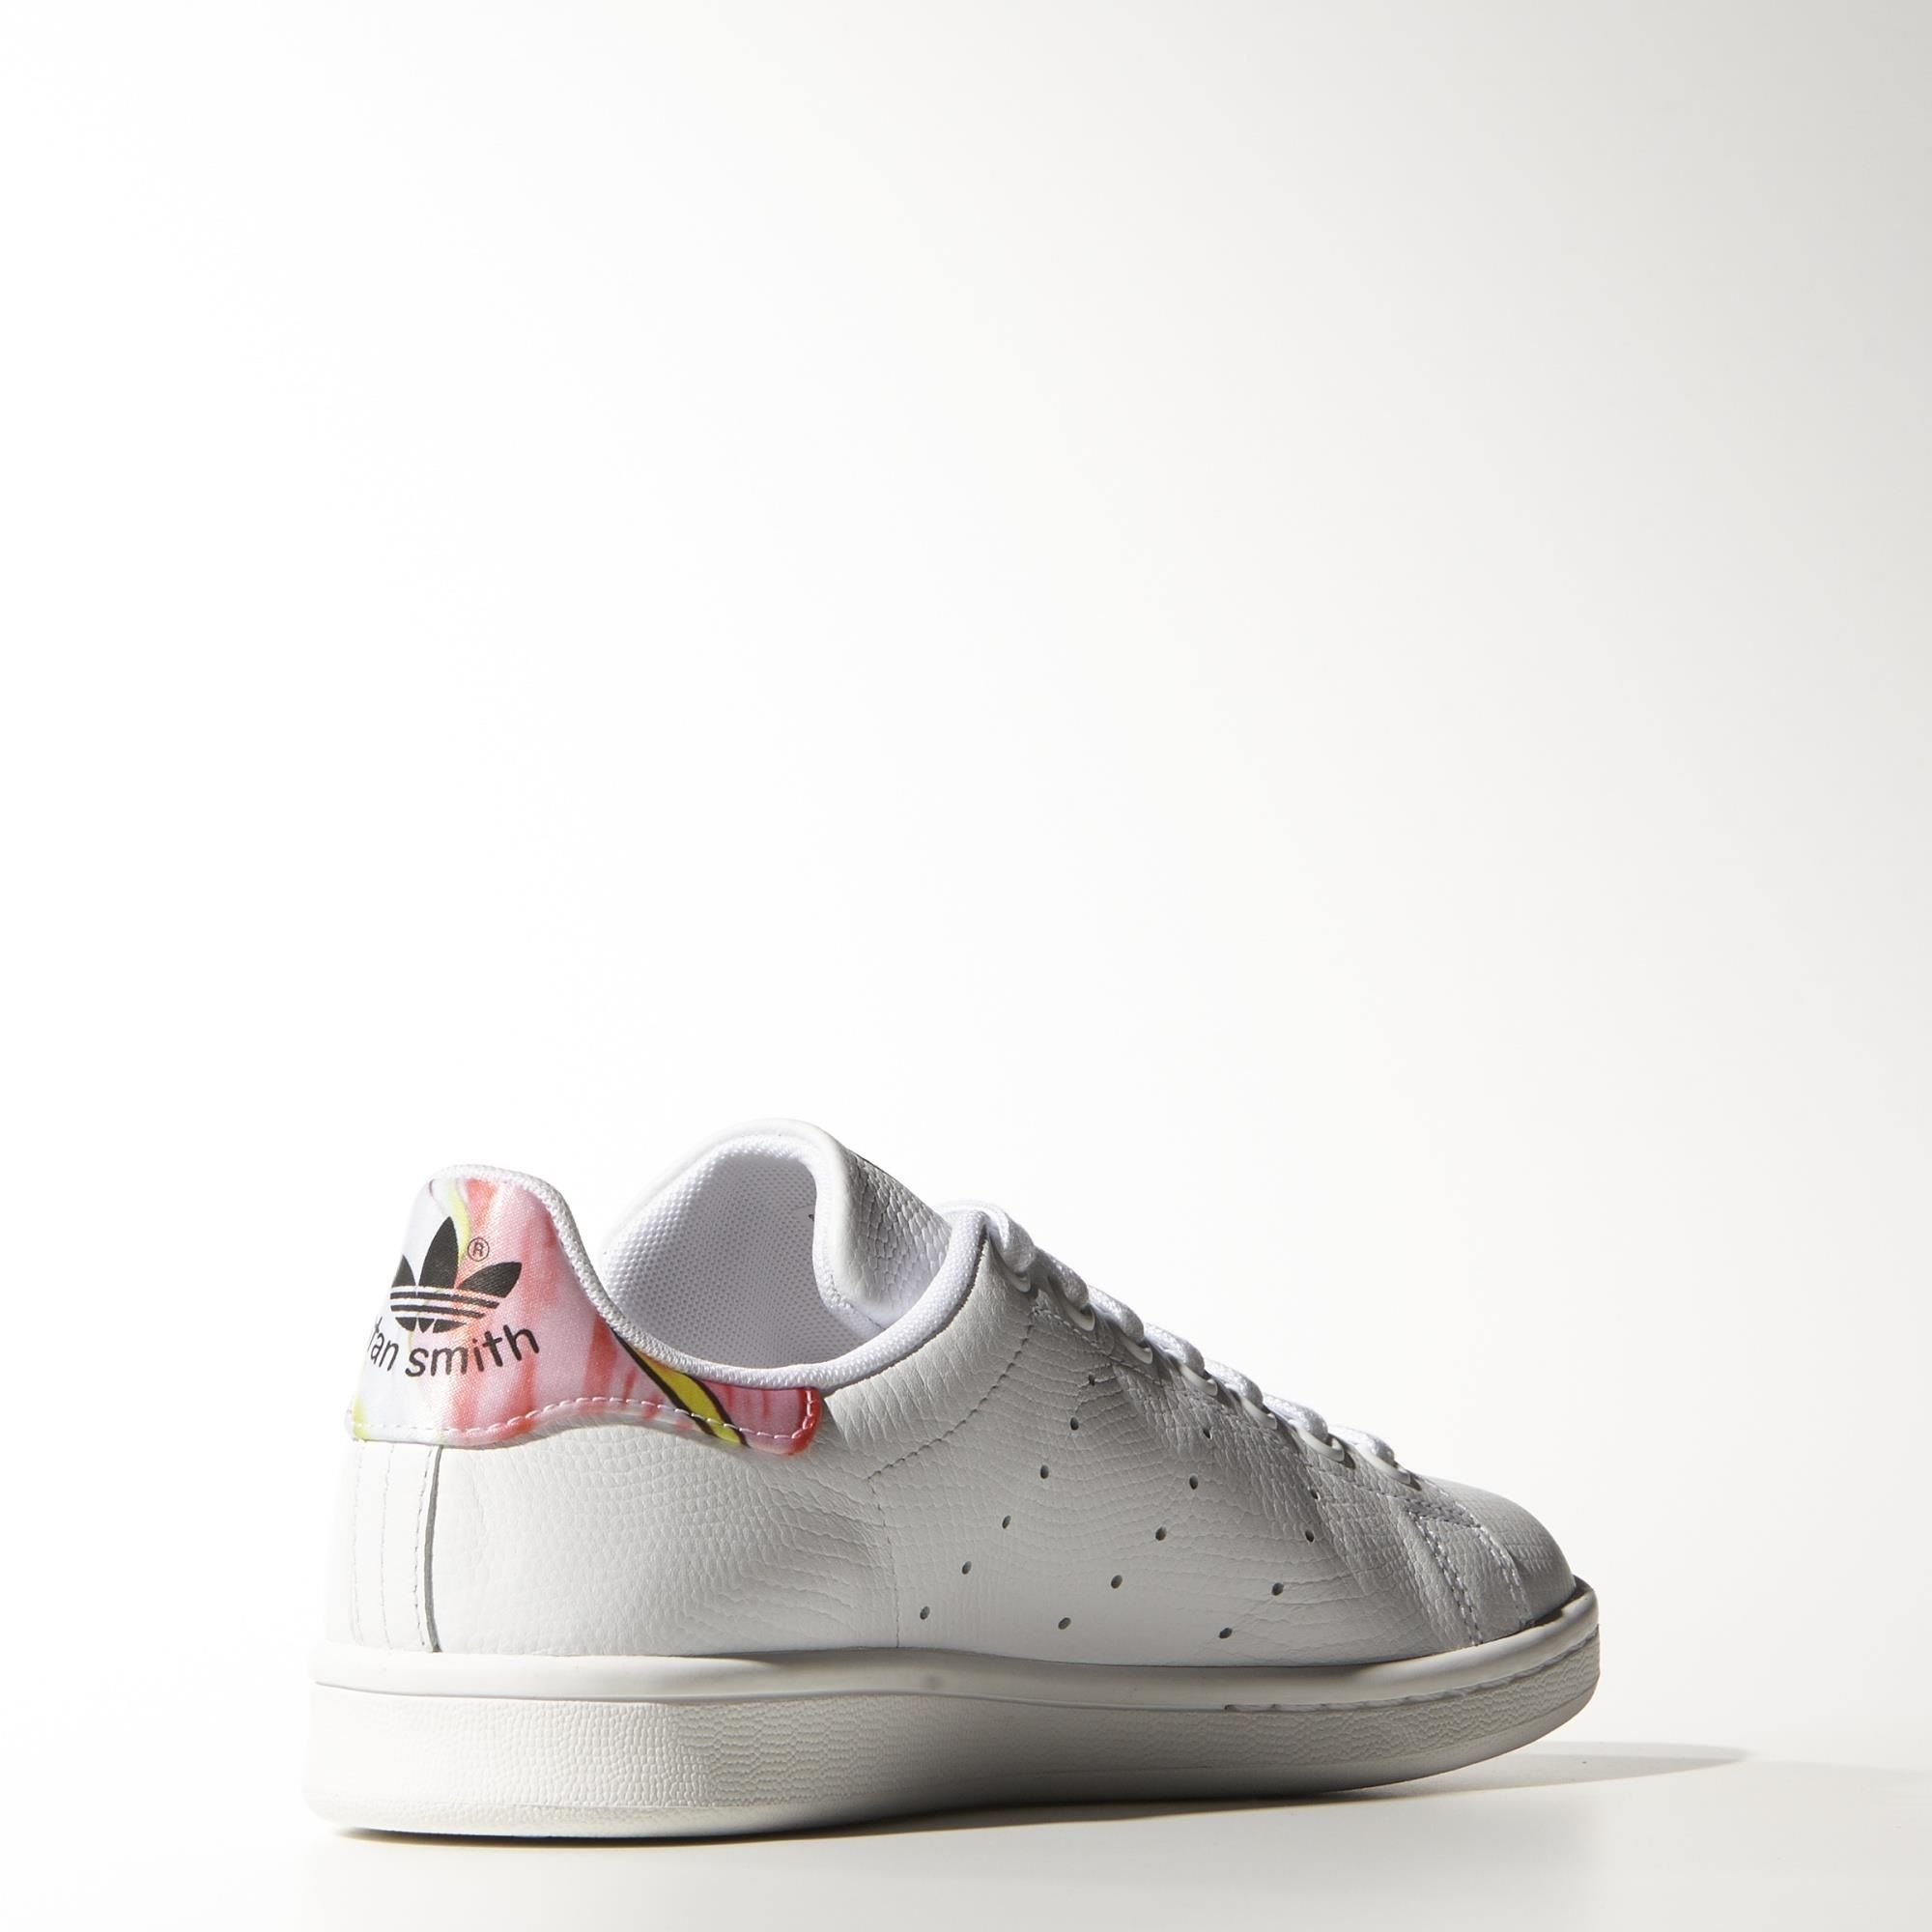 stan smith homme limite